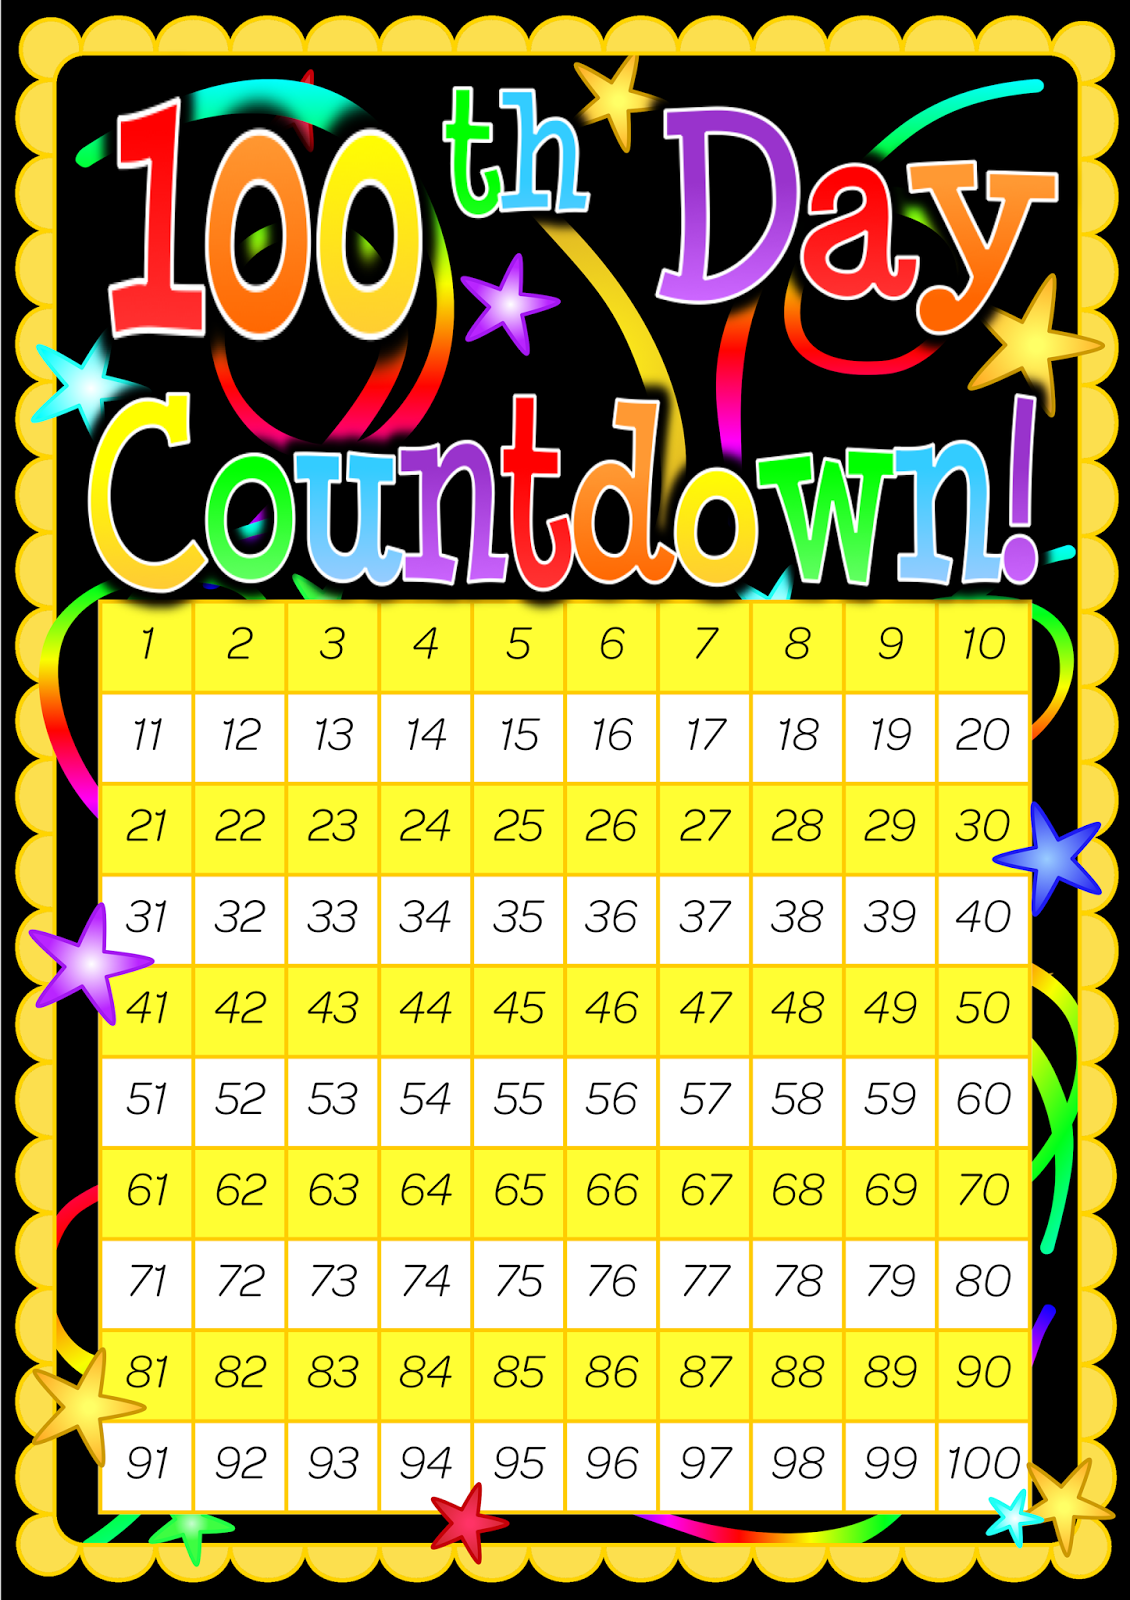 100 Day Countdown Poster Included Is A 200 Day Countdown